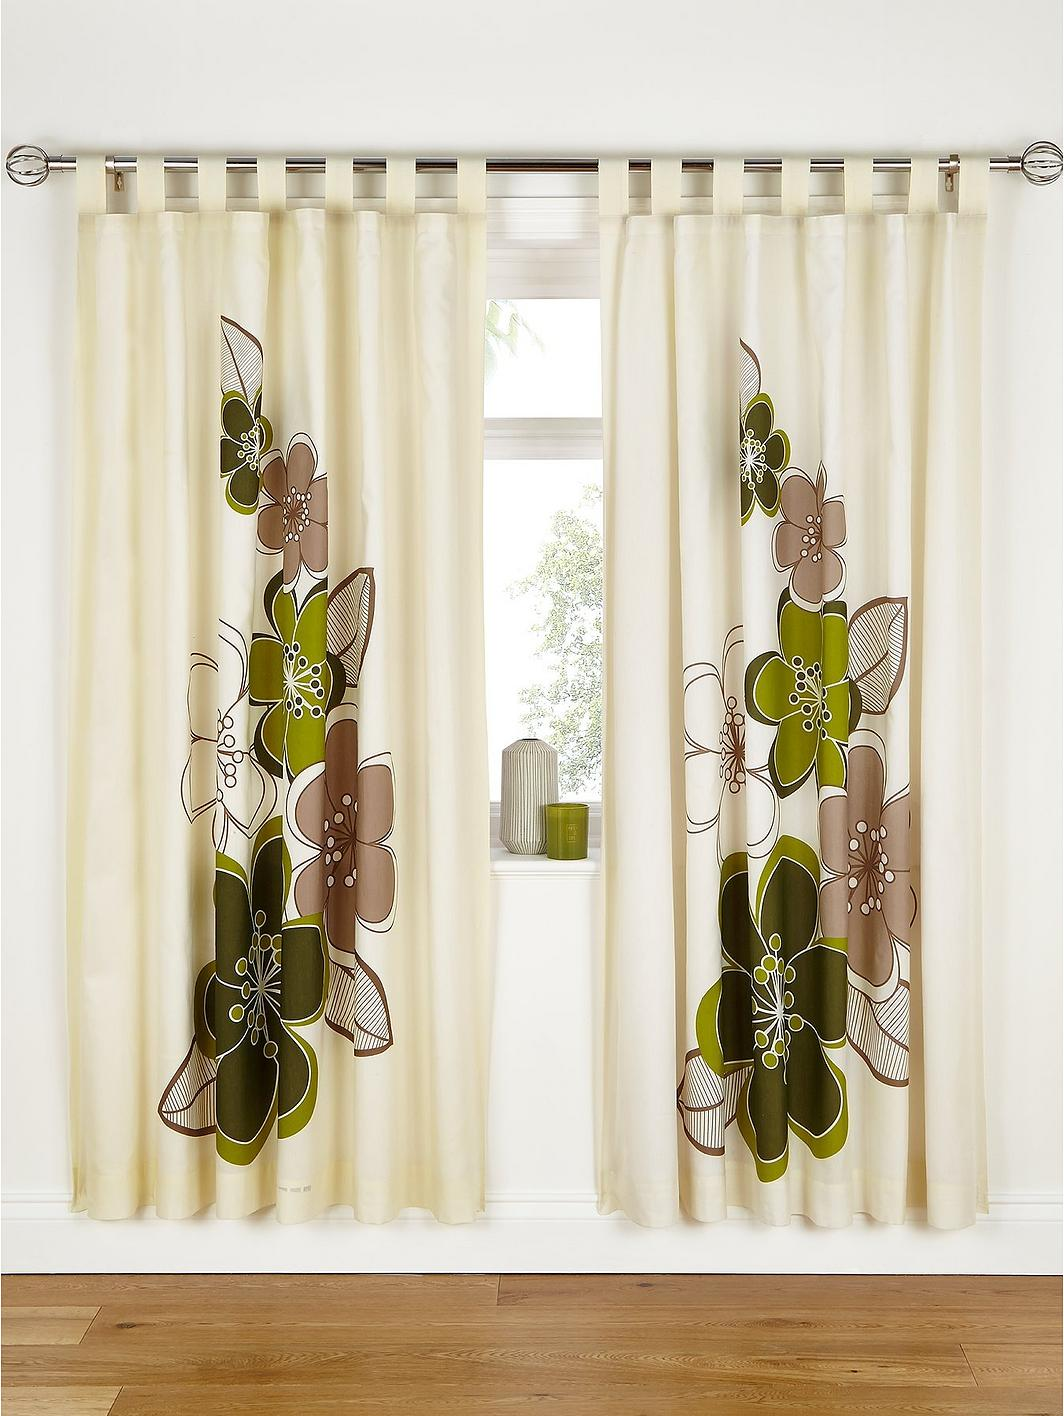 Curtains & Curtain Accessories